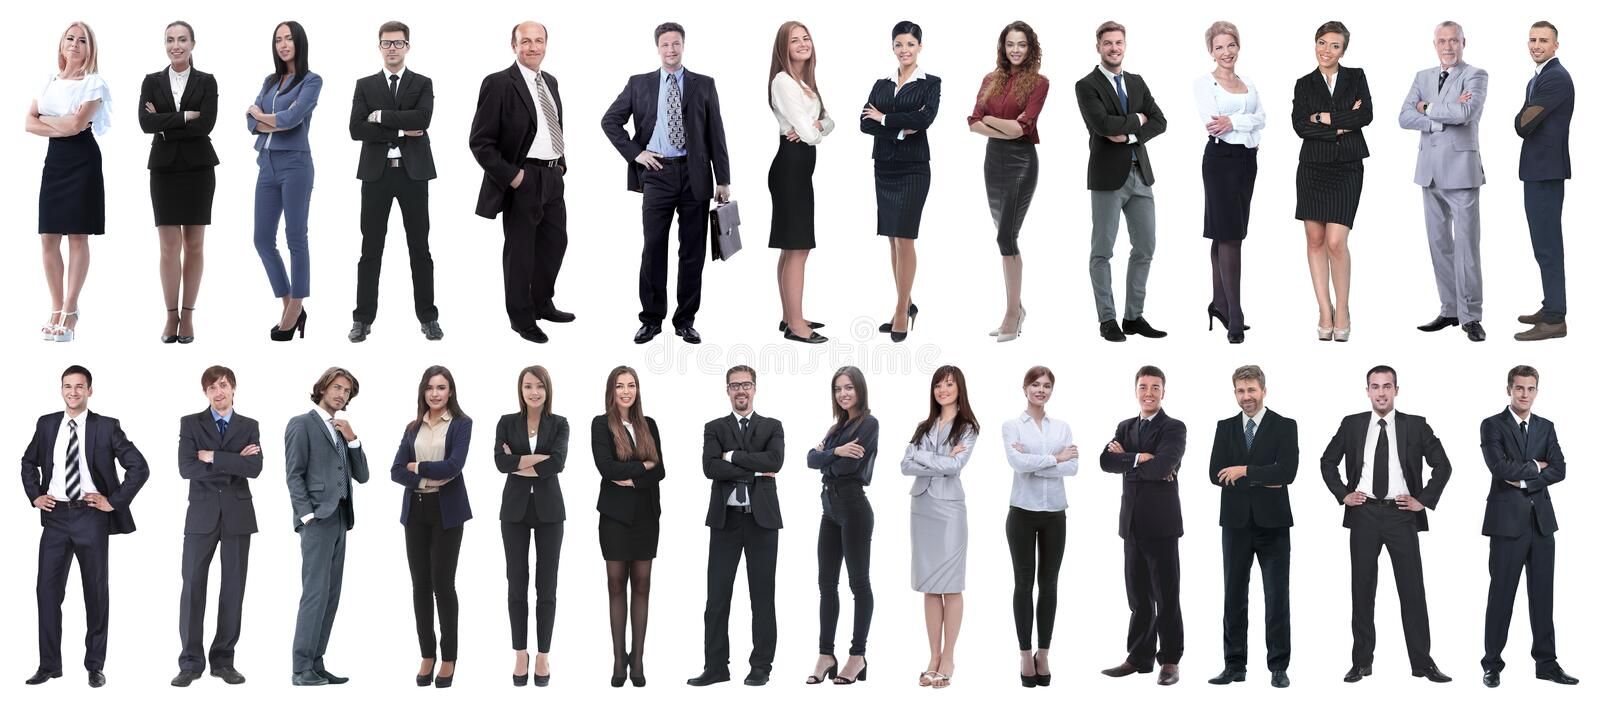 Successful business people isolated on white background stock photos